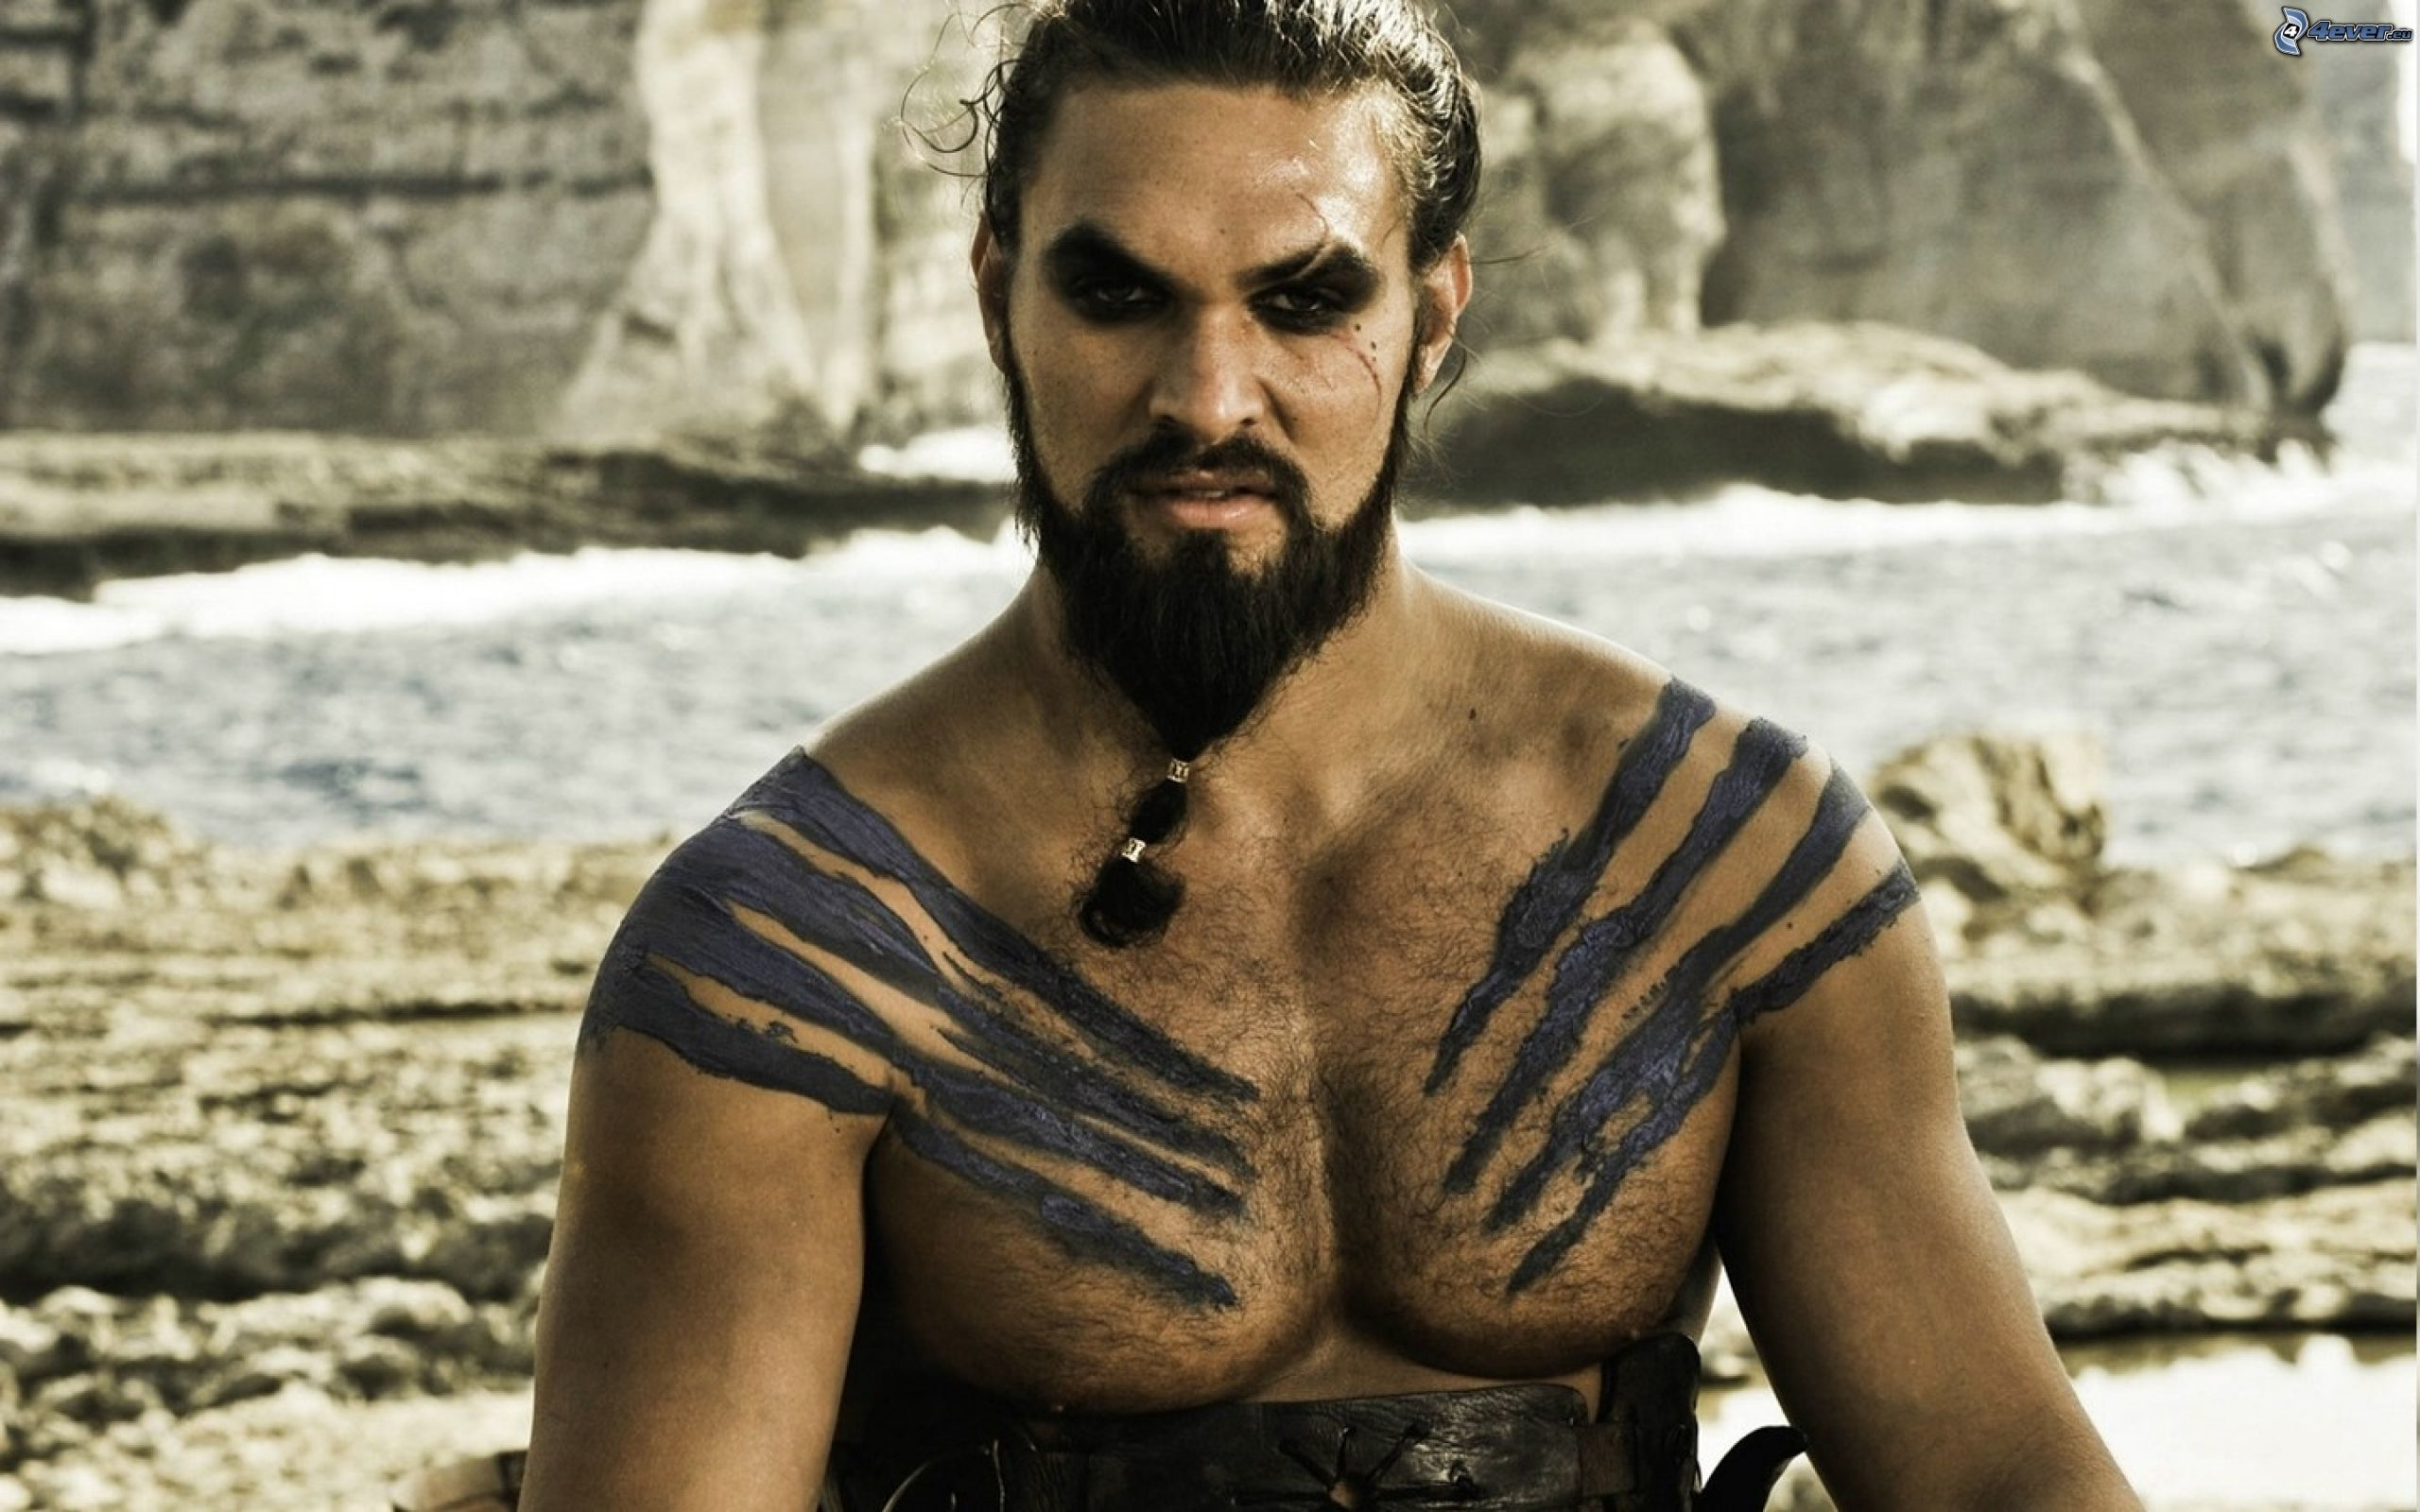 hottest game of thrones men khal